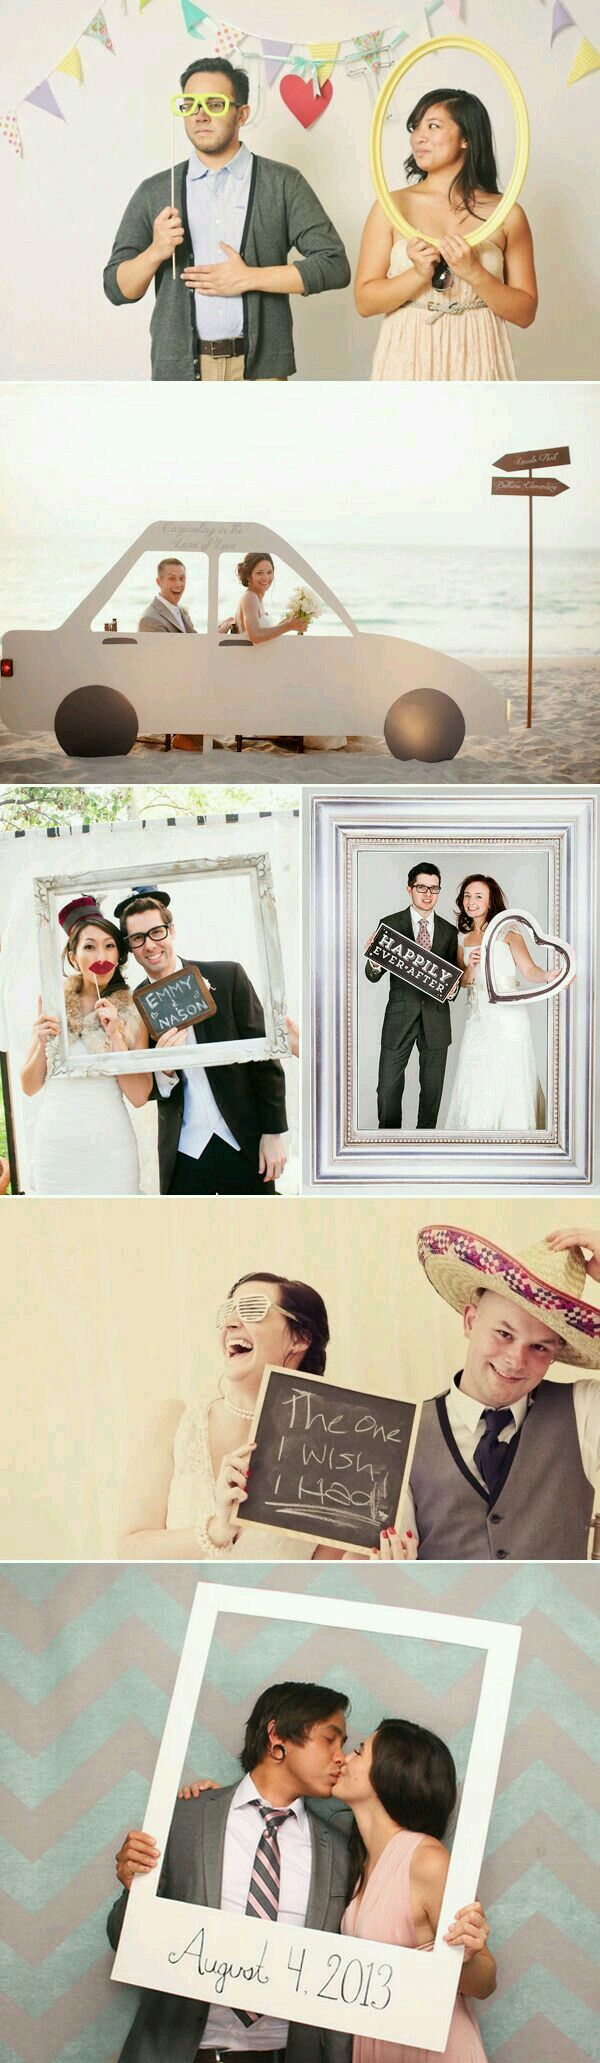 wedding photo booth props printable%0A Always a crowd please having an adorable Photo Booth  Heres some creative  photo booth ideas that will capture those fun memories